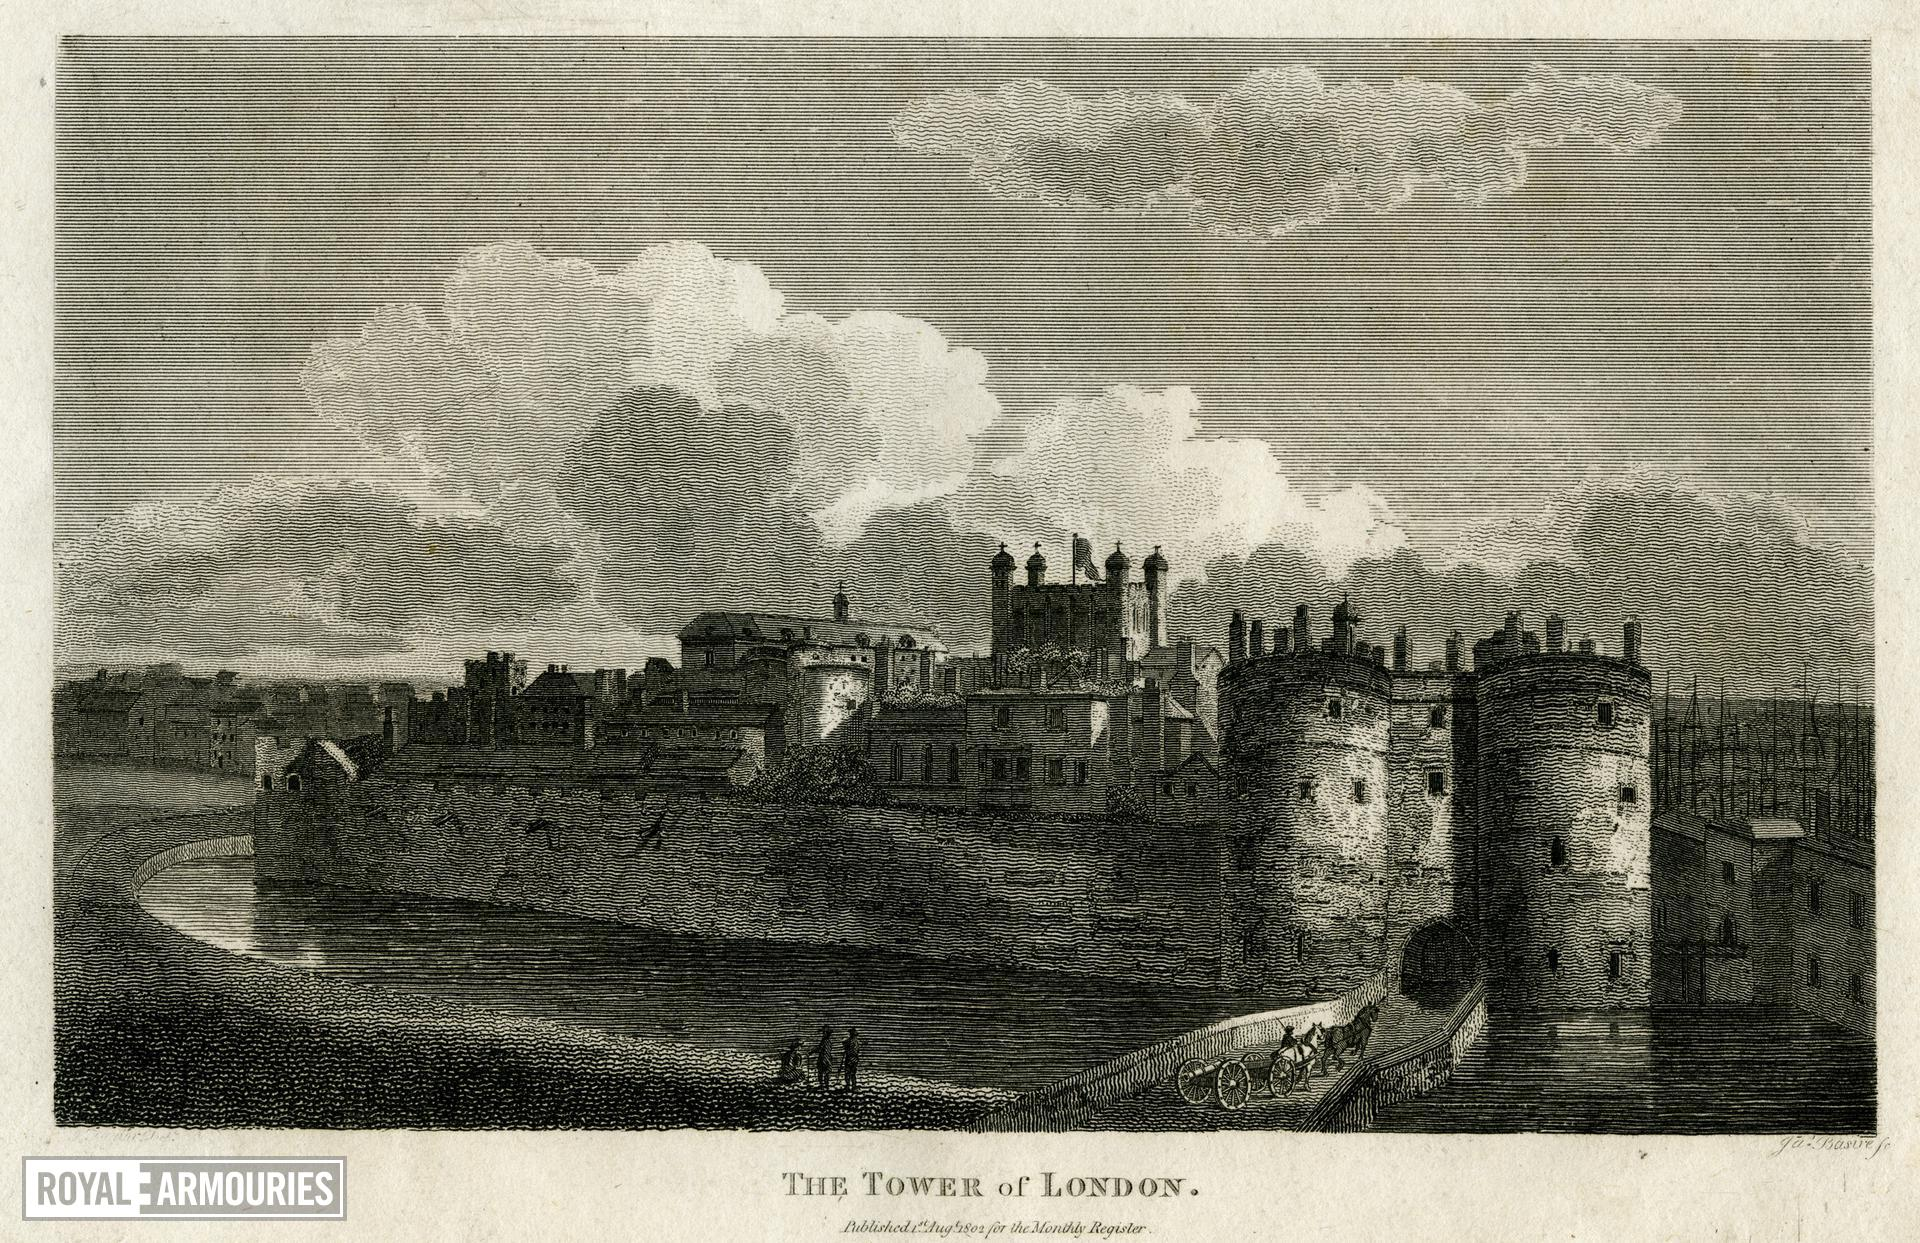 Print 'The Tower of London', showing the bridge over the moat and the entrance through the Byward Tower, 1802.